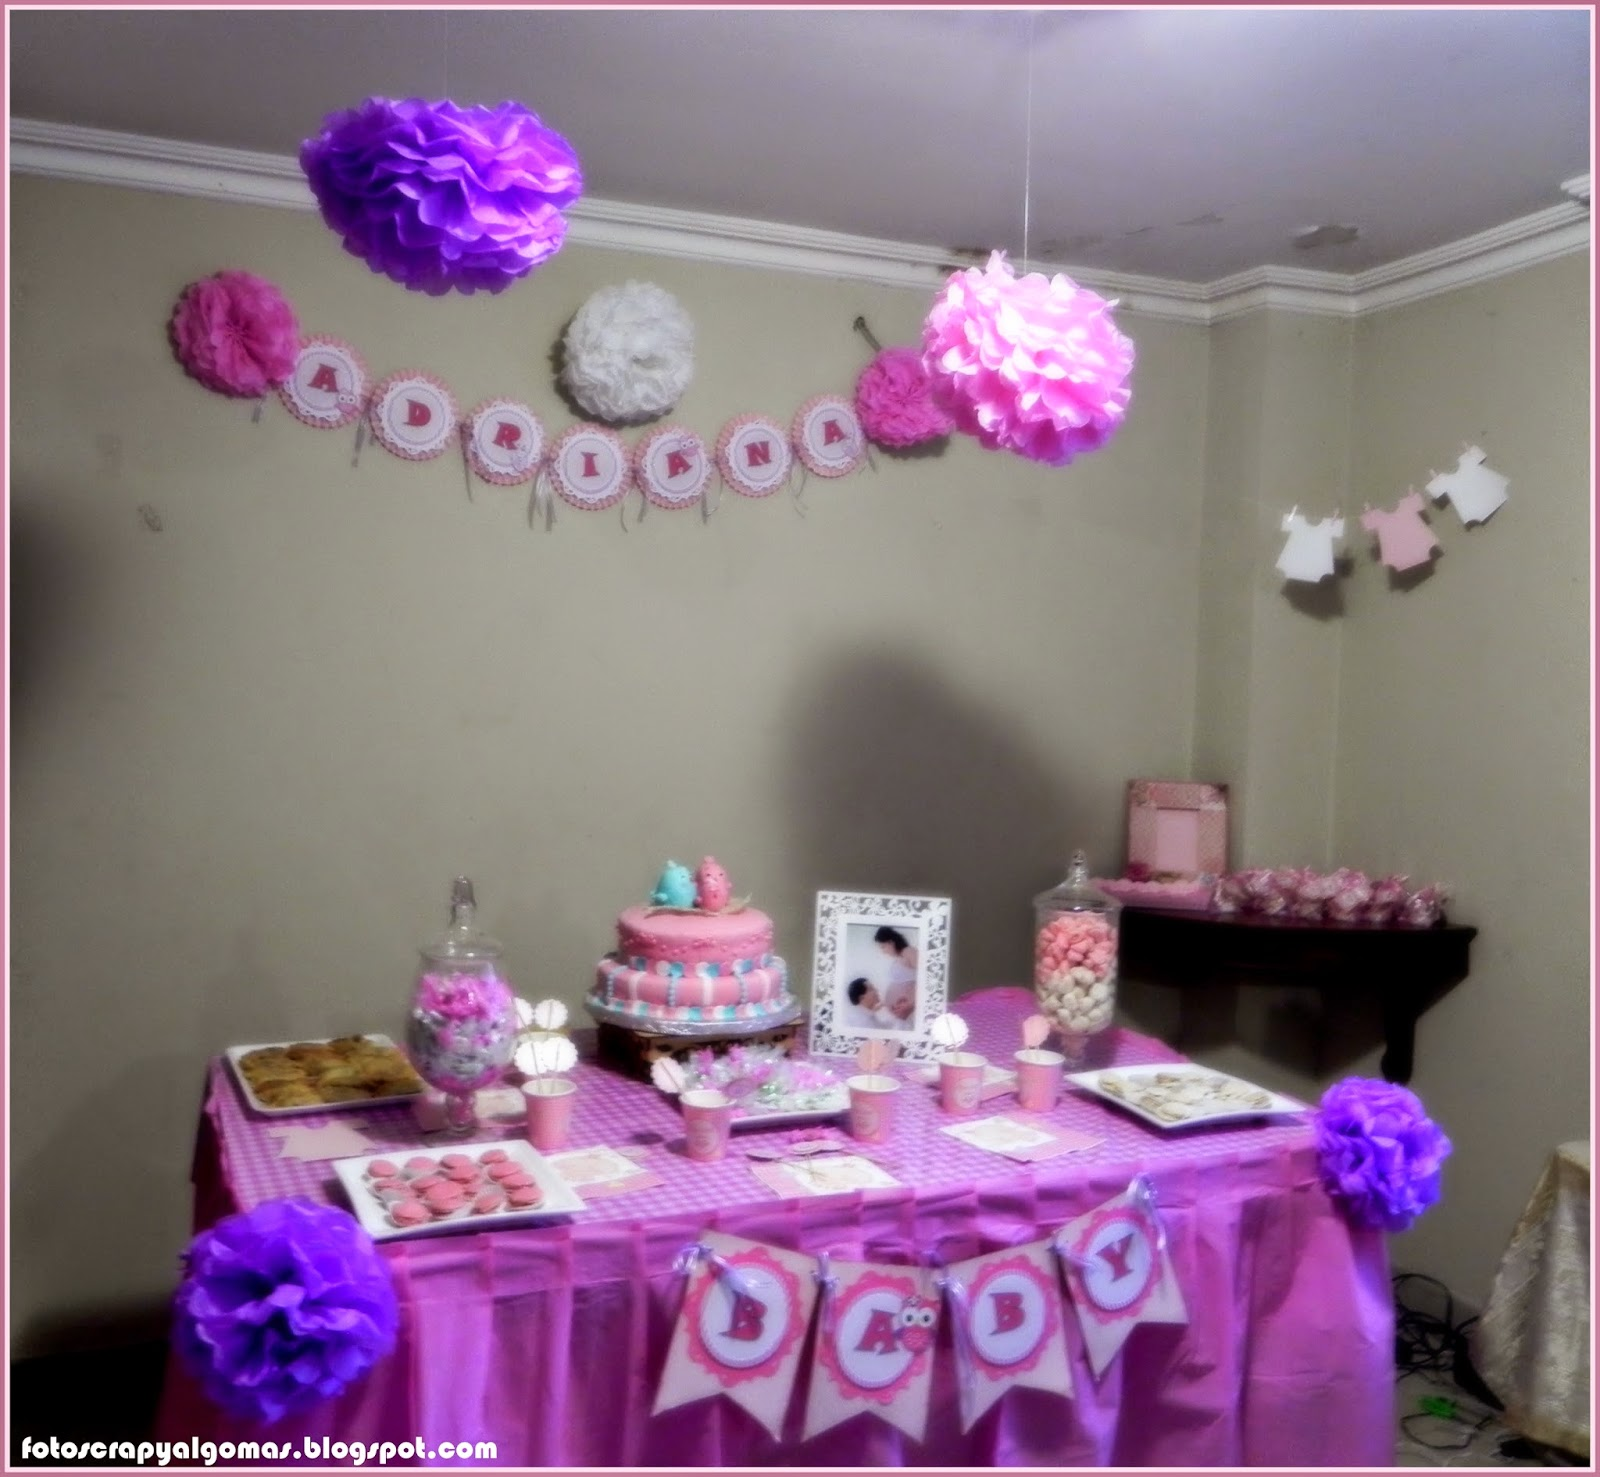 Fotos Scrap y Algo mas Decoraci³n Baby Shower